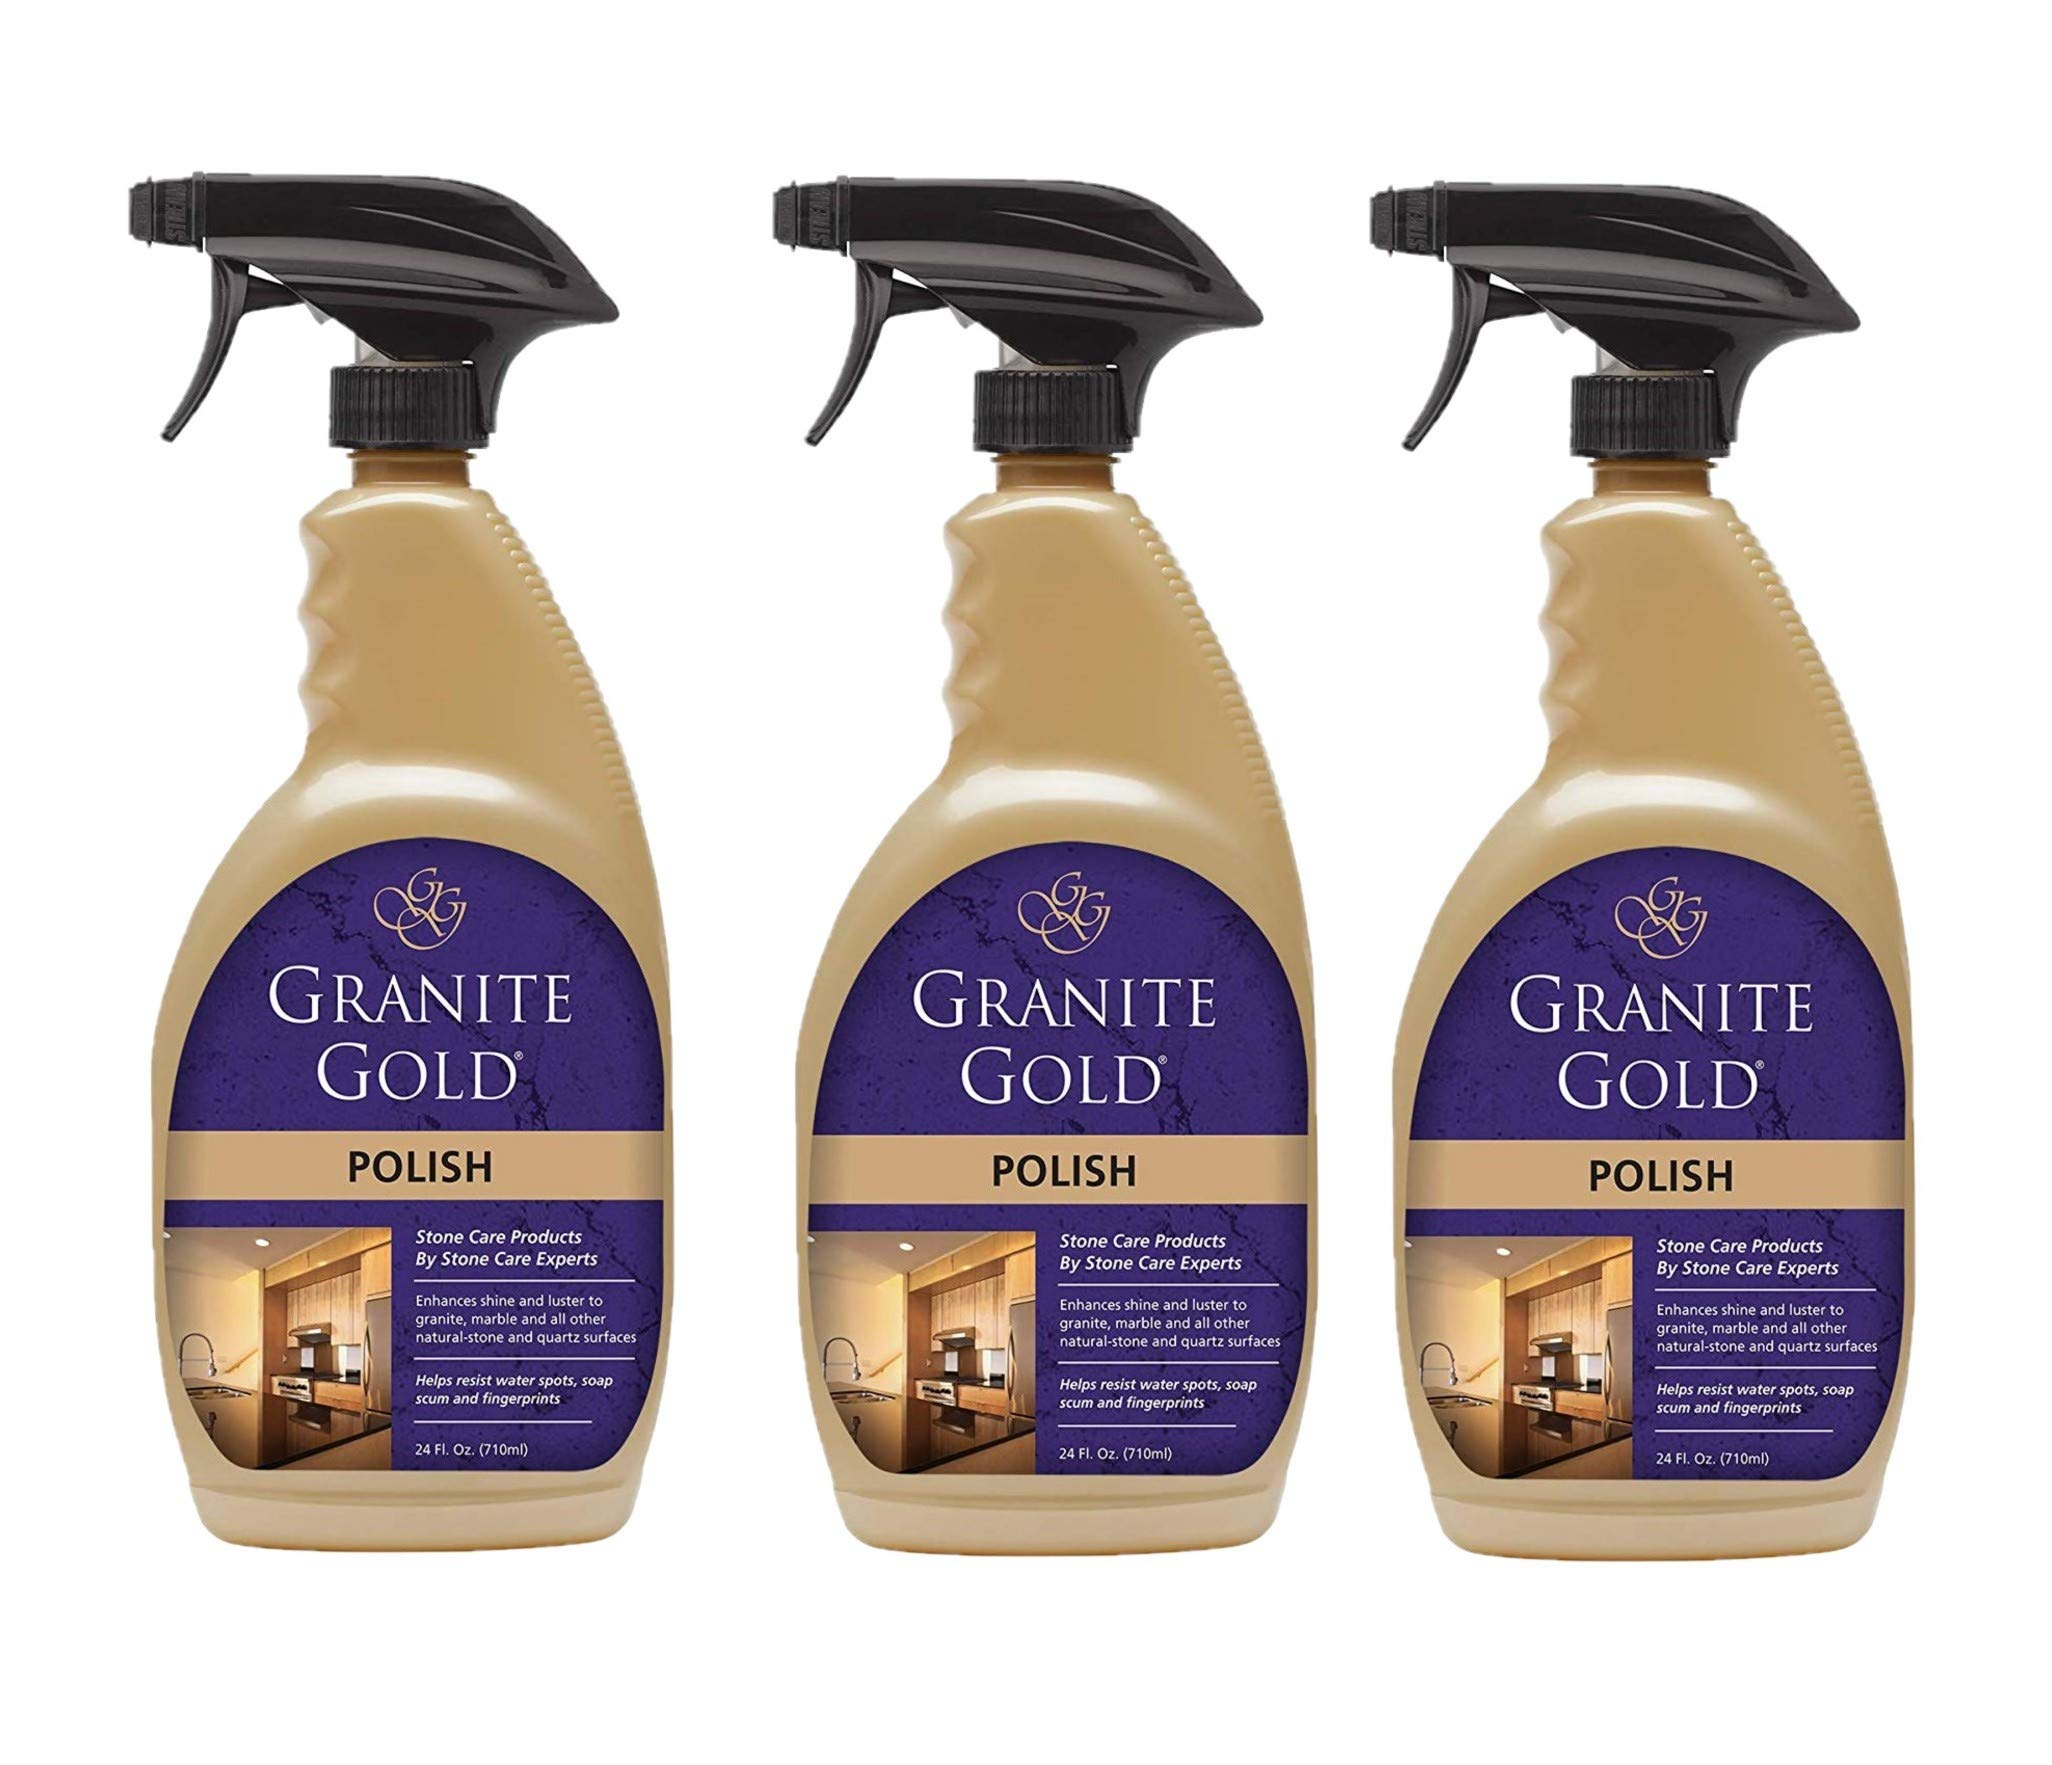 Granite Gold Polish Spray - Maintain Shine And Luster Of Natural Stone Surfaces - 24 Ounces, Pack of 3 by Granite Gold